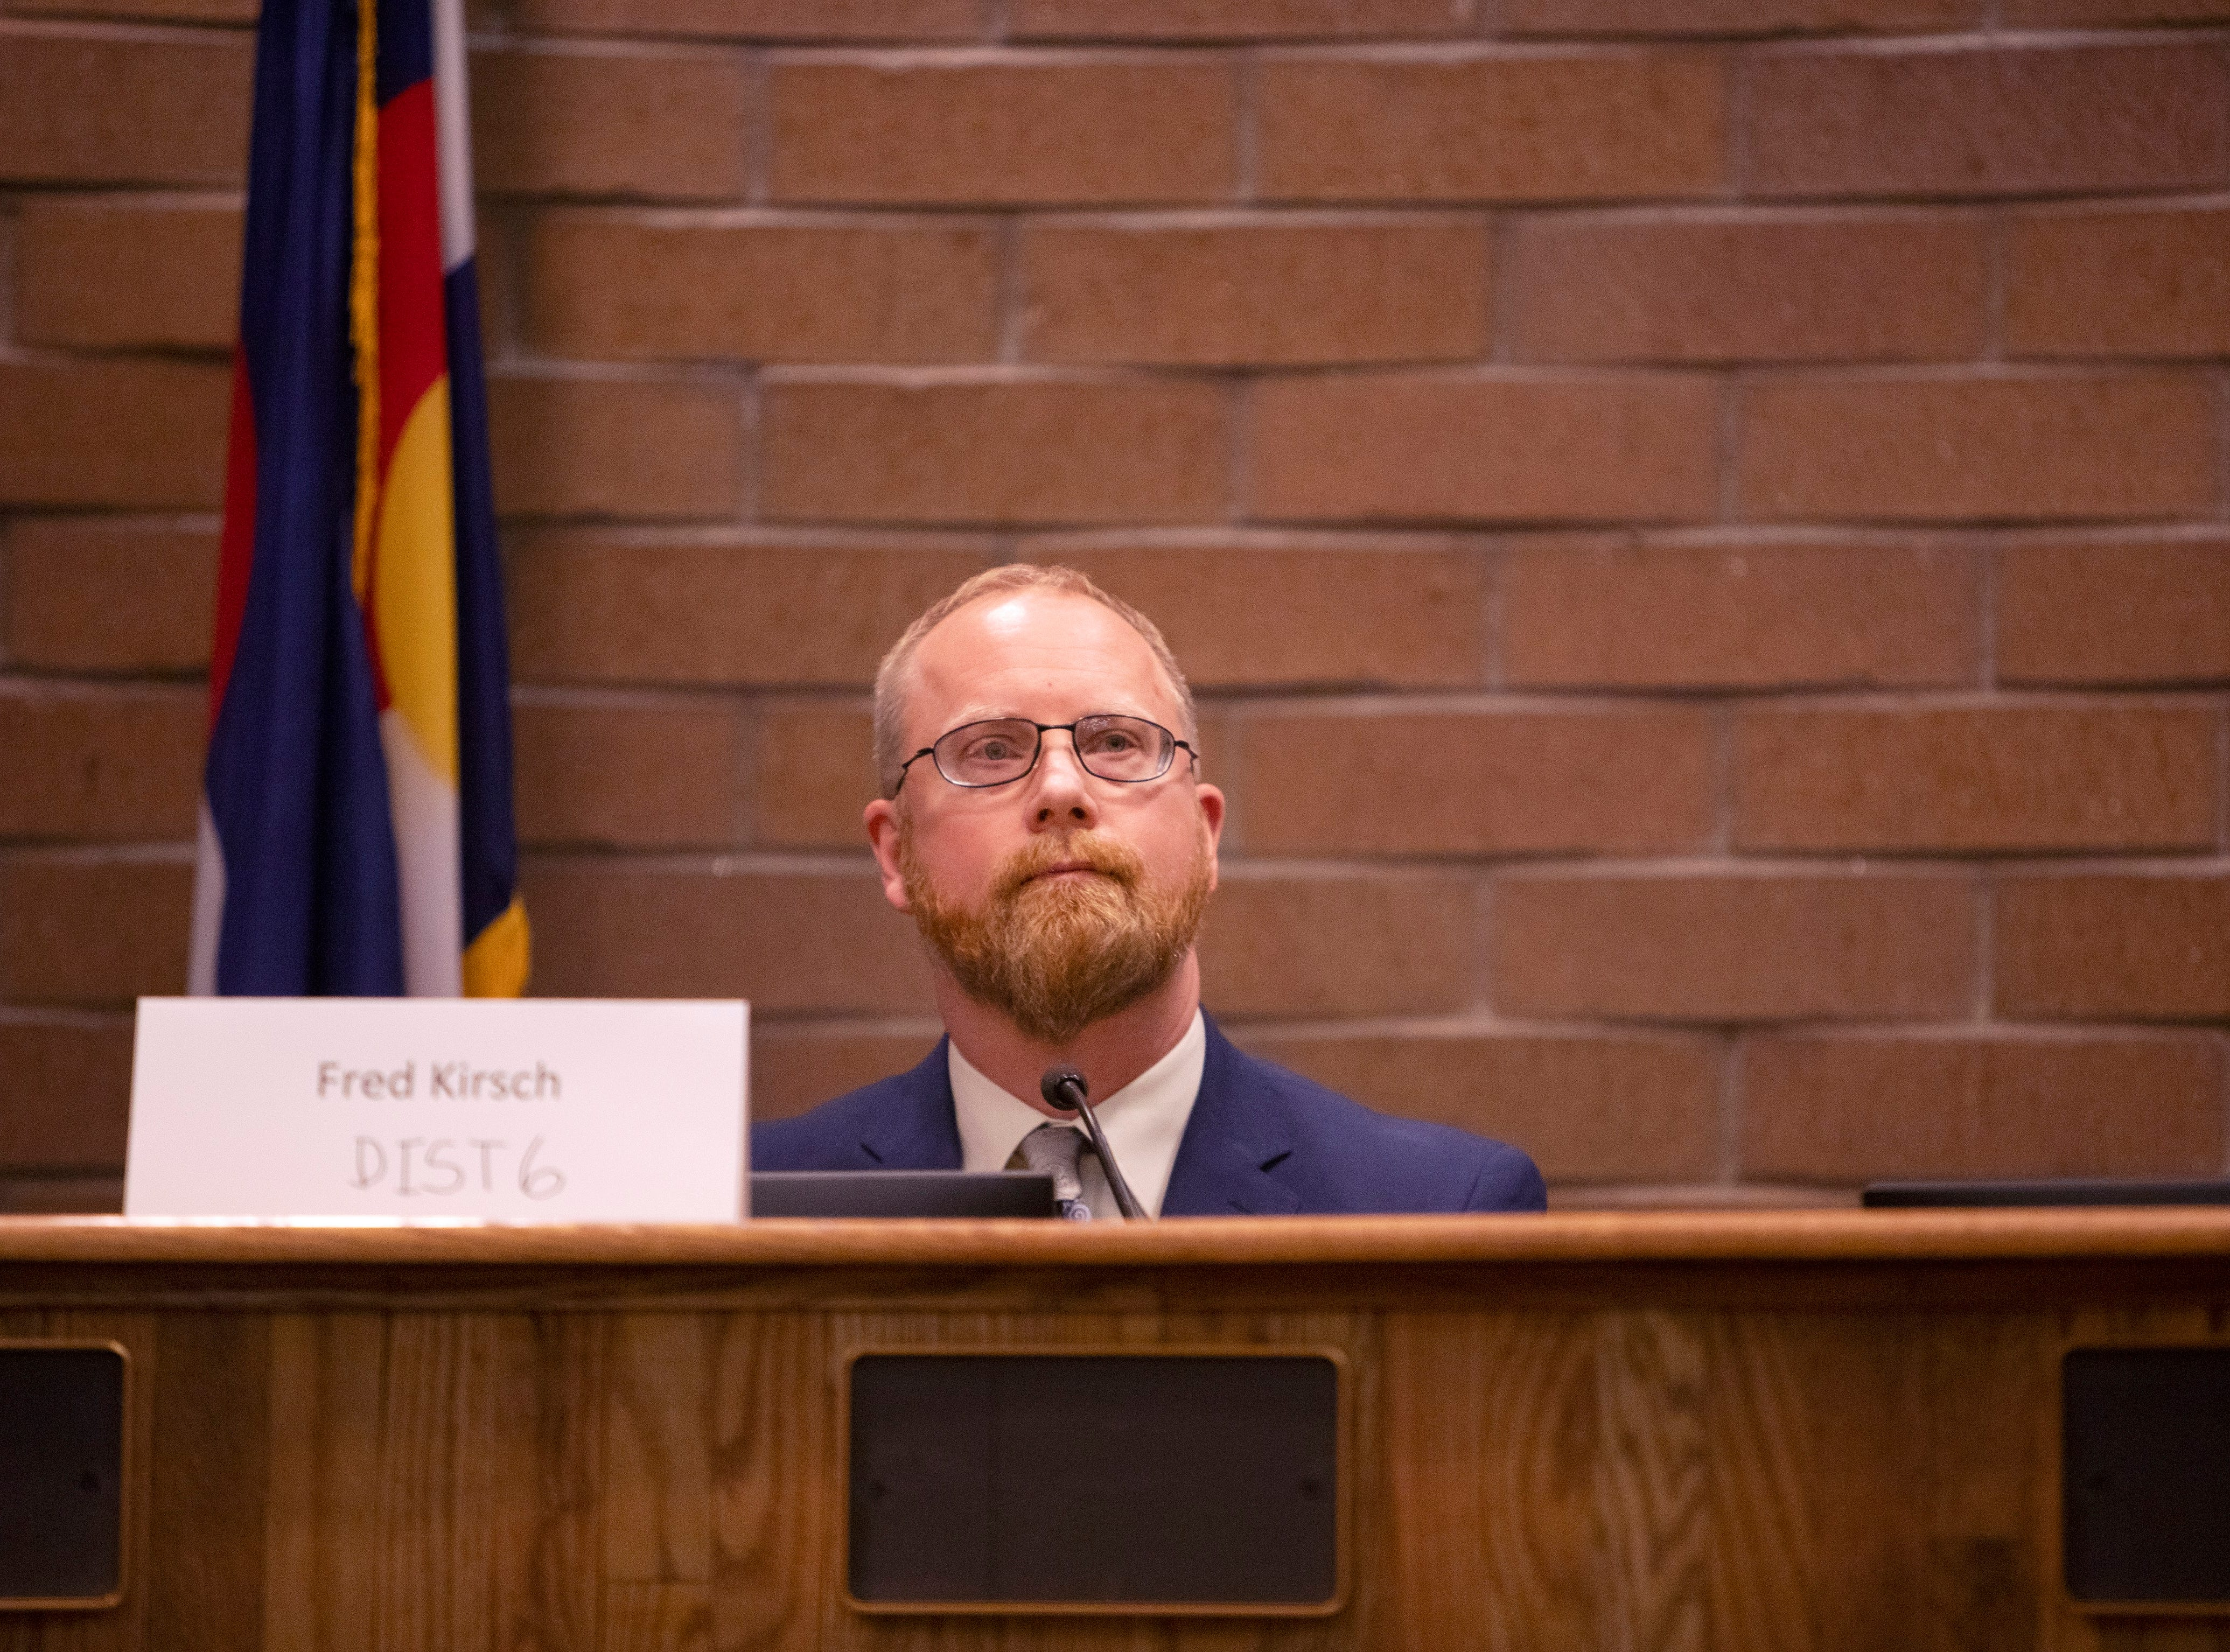 City Counsil candidate Fred Kirsch participates in the candidate forum hosted by The League of  Women Voters of Larimer County at City Hall on March 6.